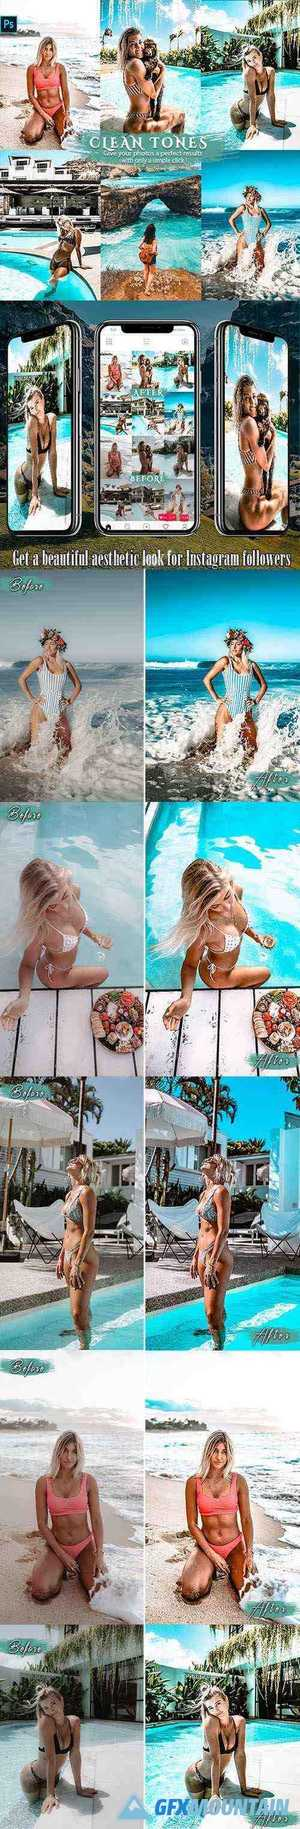 Clean Effects Travel Photoshop Actions 26039562